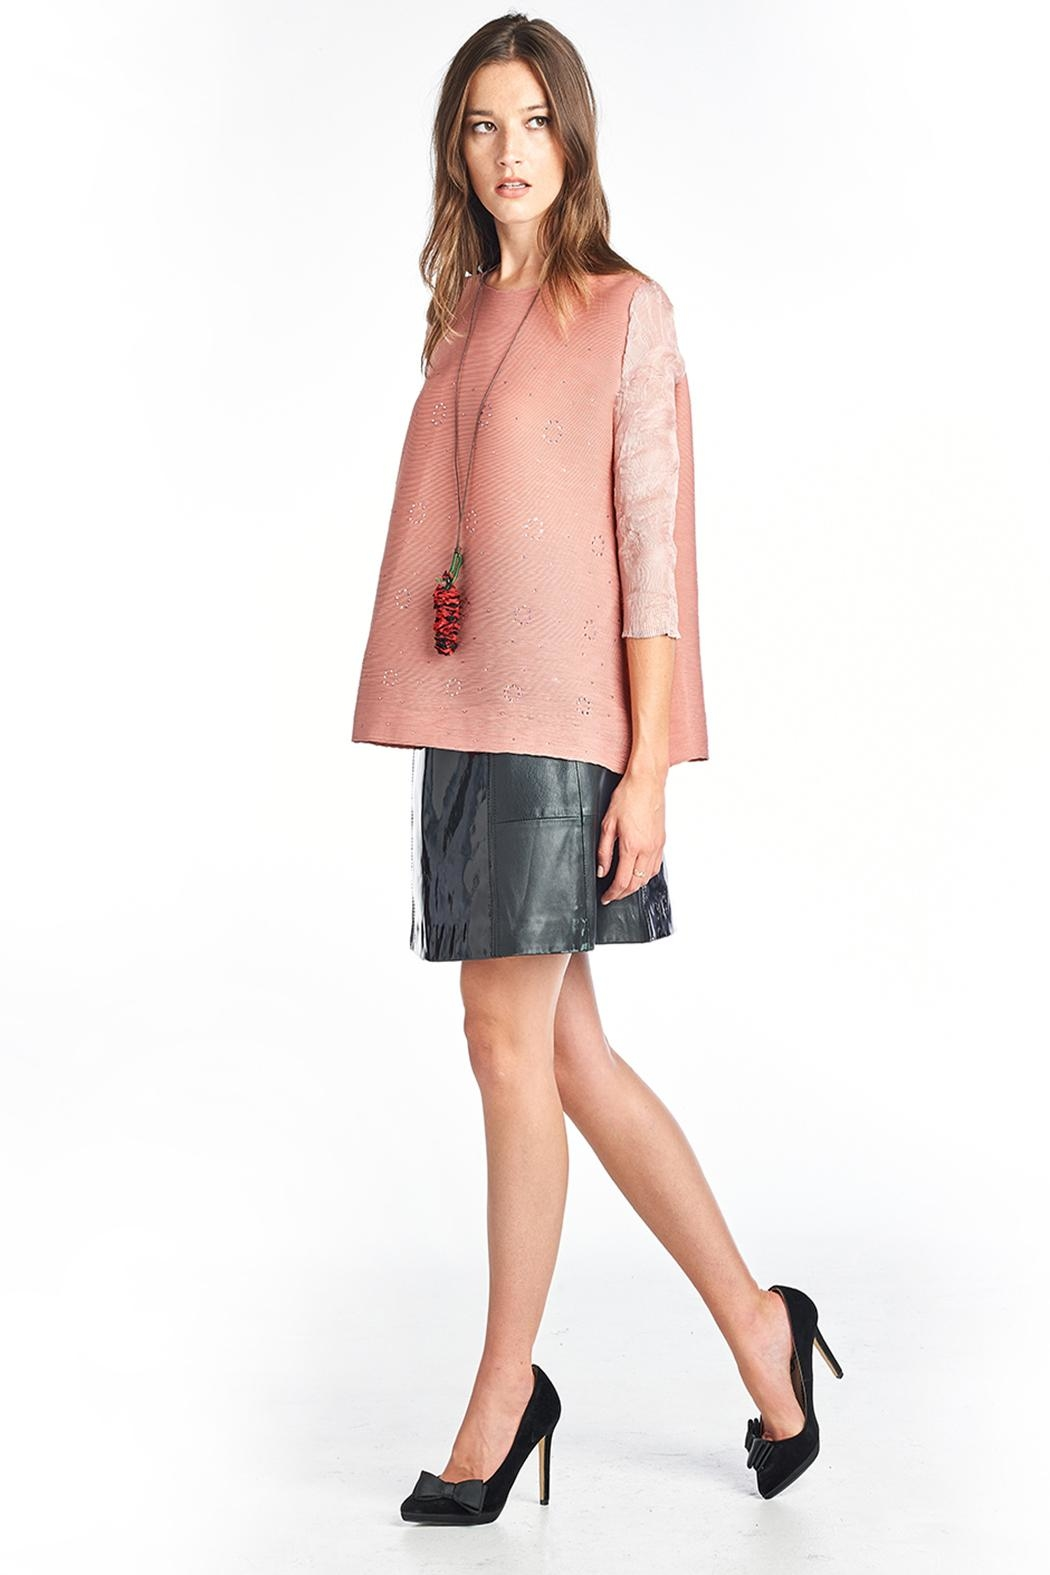 Nabisplace Azalea Blouse Pink - Side Cropped Image